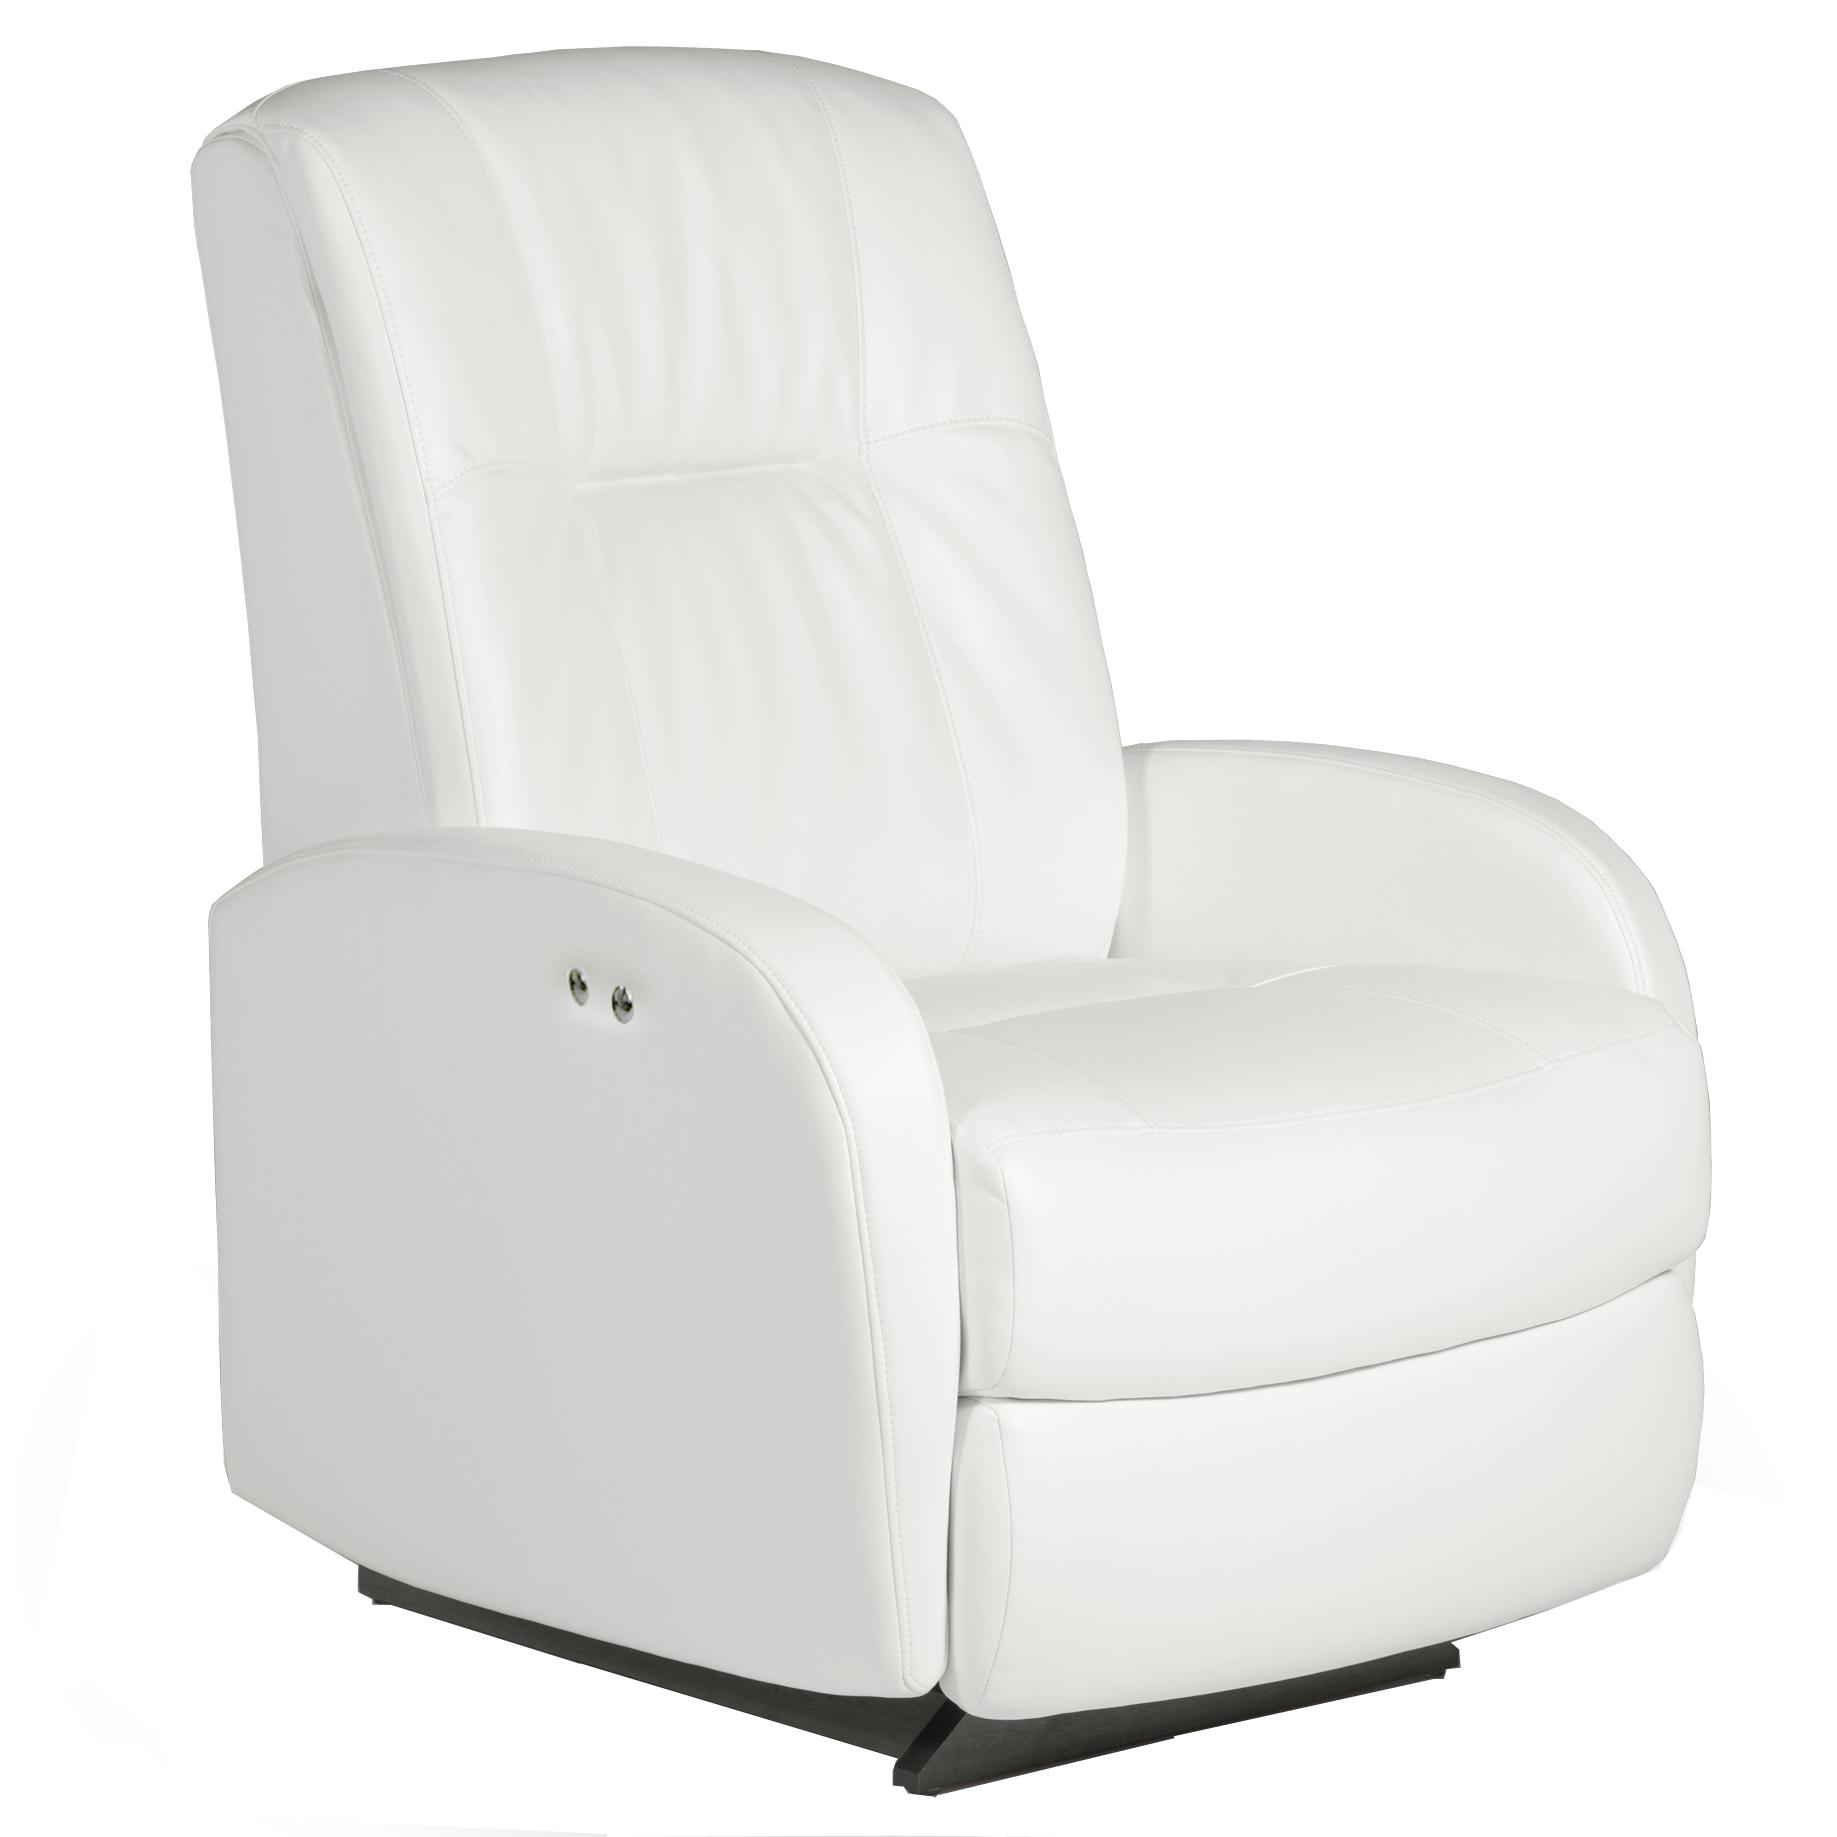 Best Home Furnishings Recliners - Petite Ruddick Power Rocker Recliner - Item Number: 2AP47BL